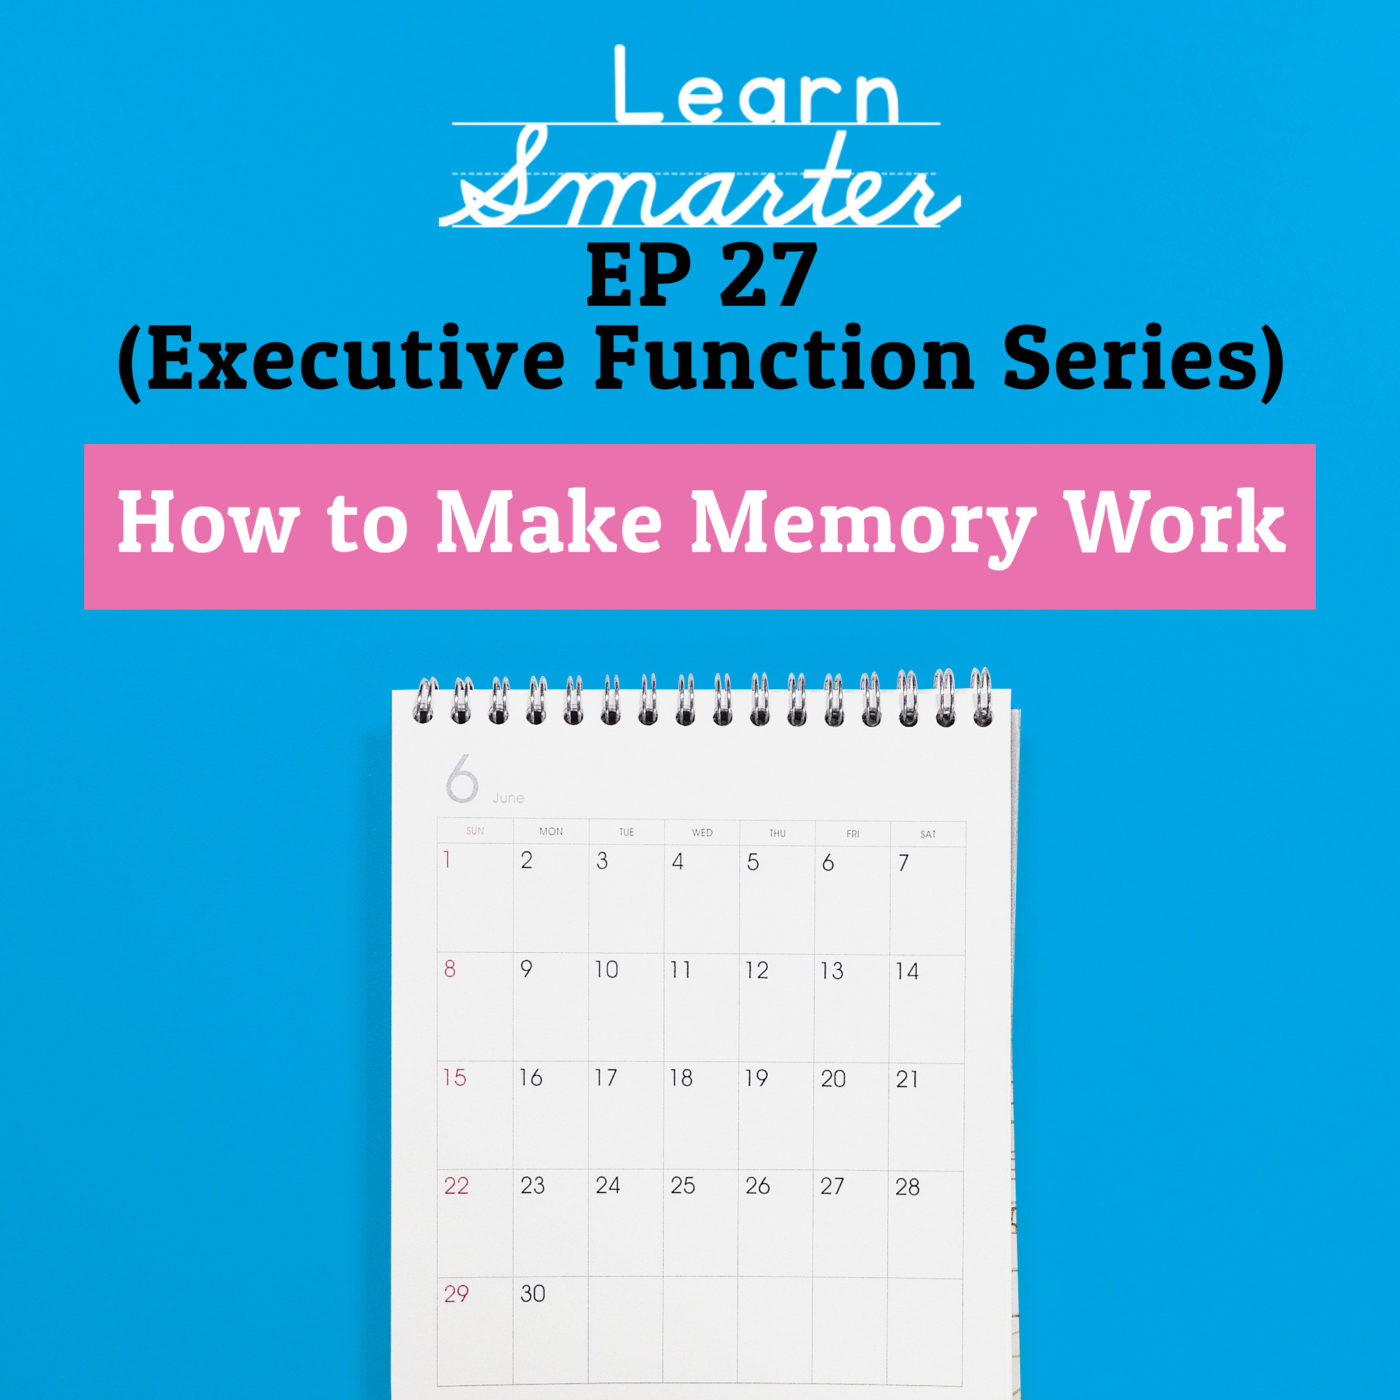 27: How to Make Memory Work